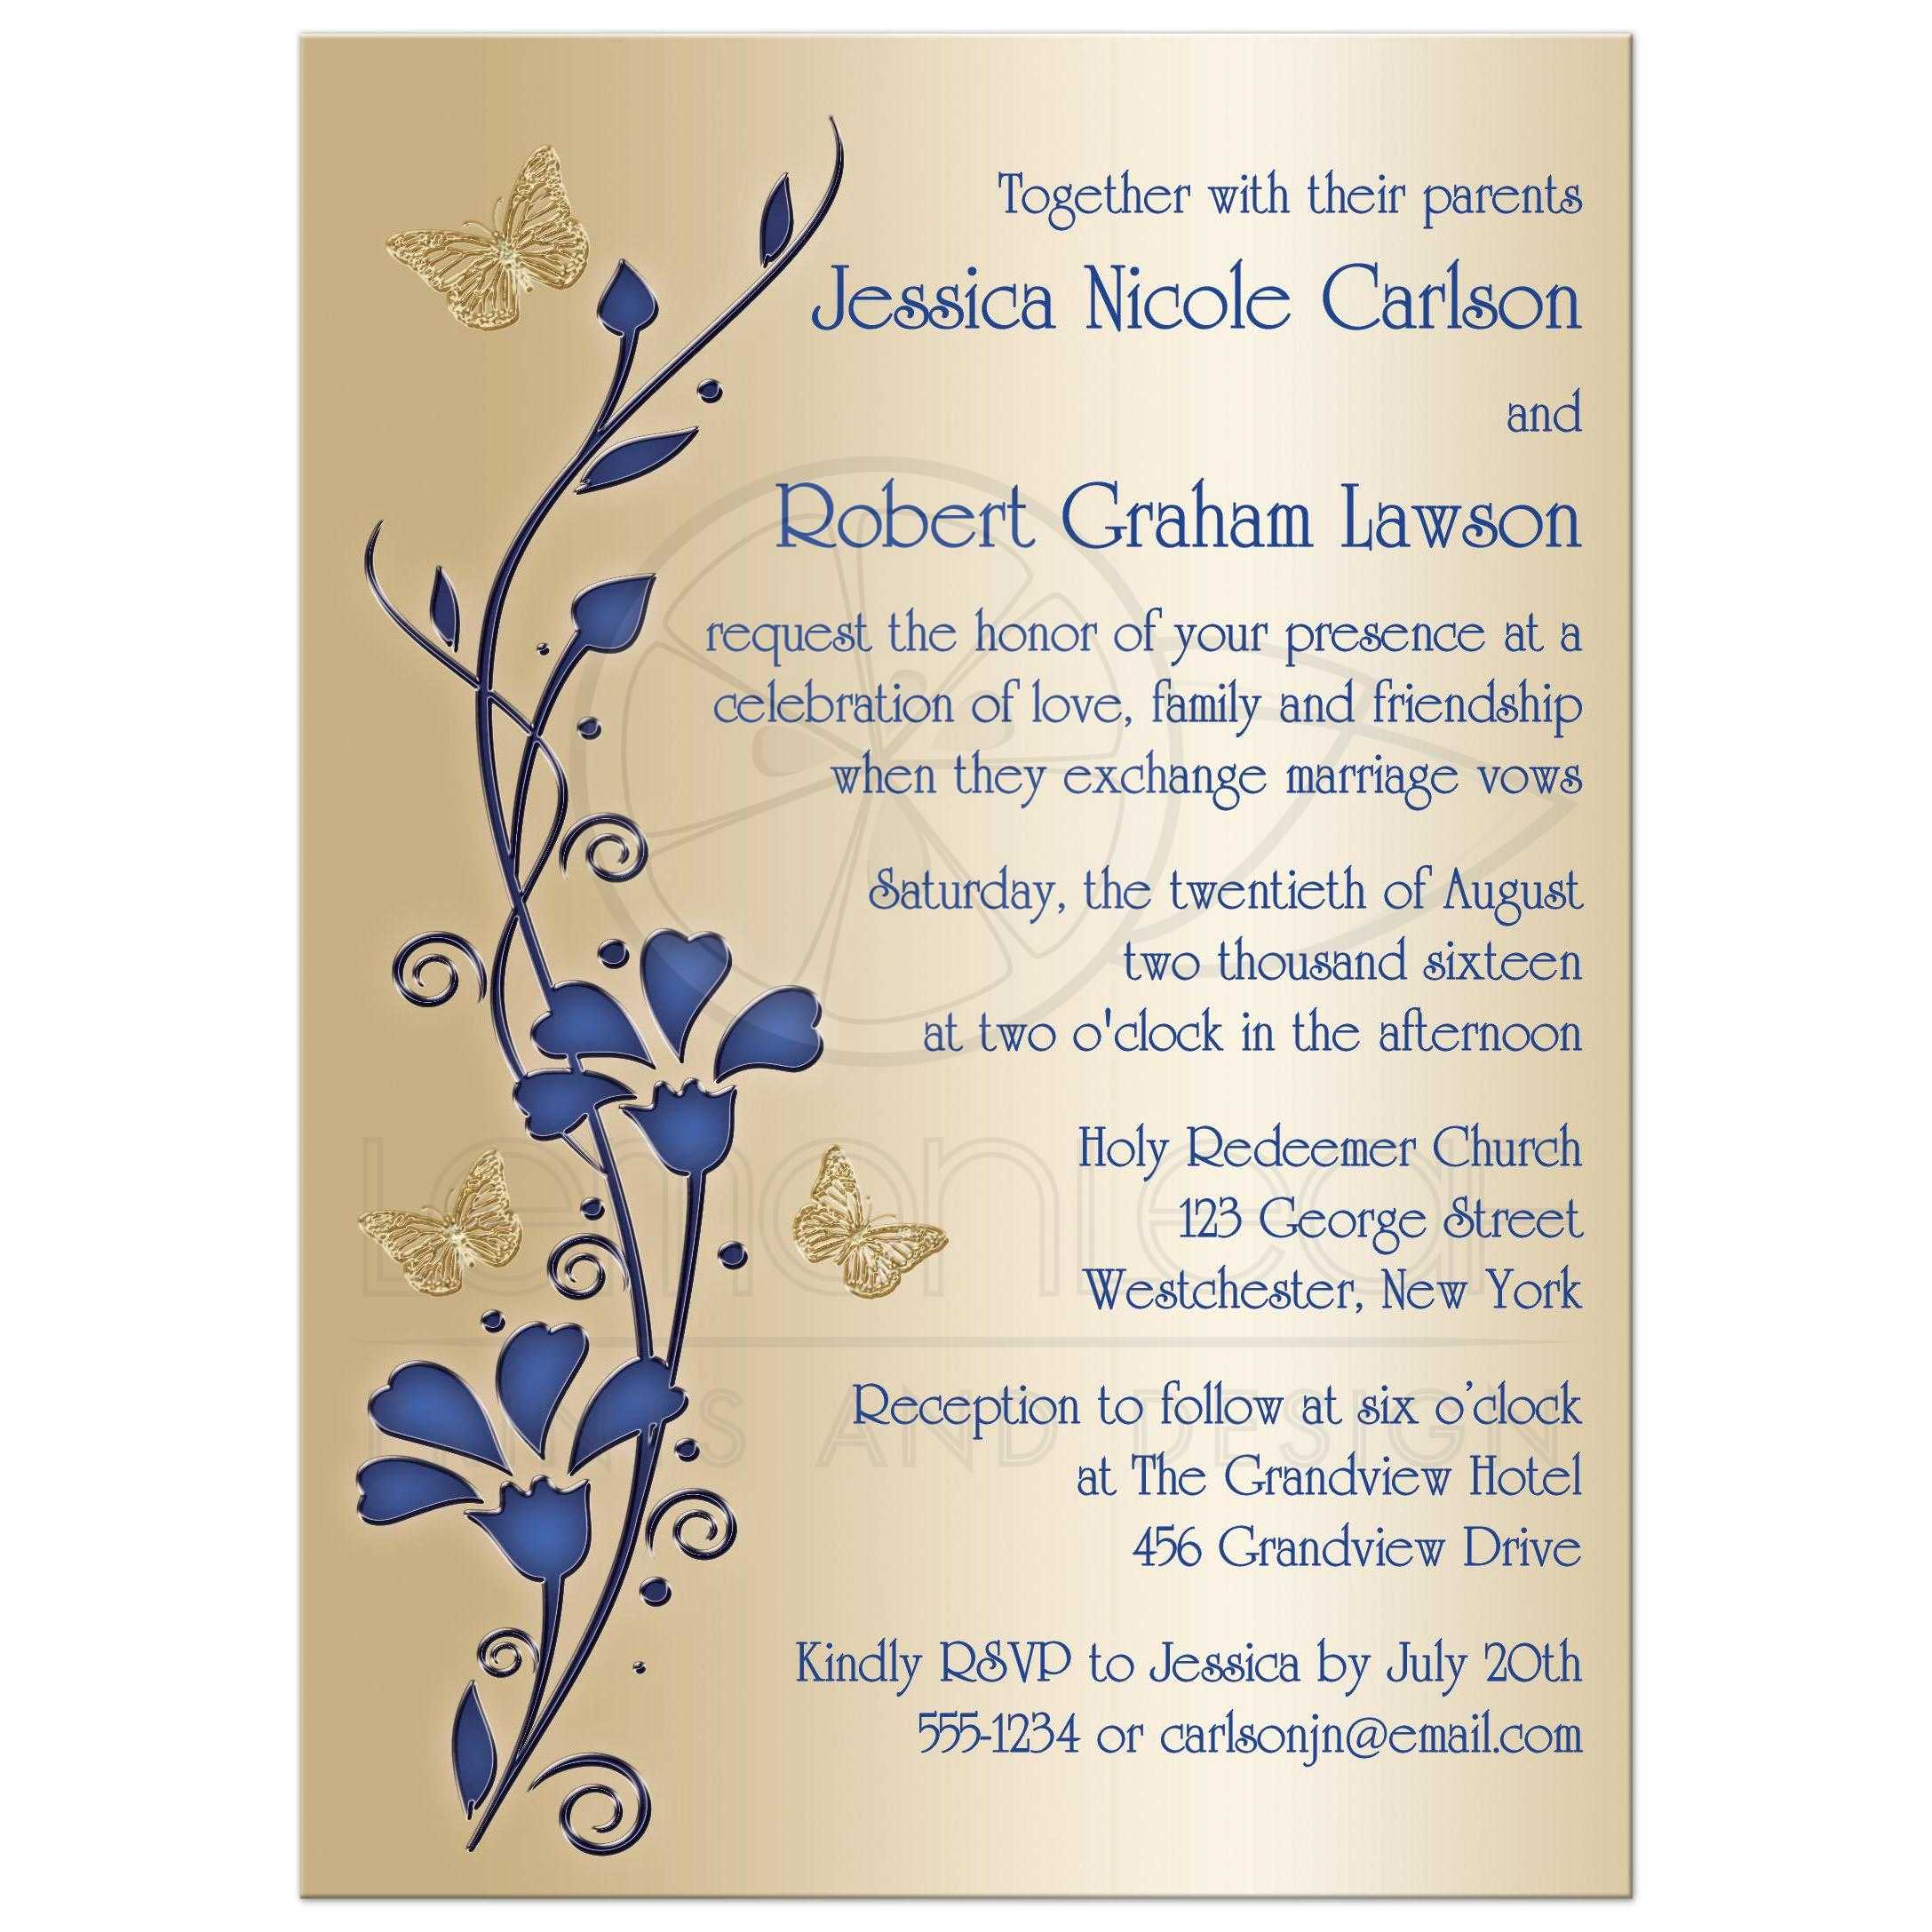 Wedding Invitation | Royal Blue and Gold | Flowers, Butterflies